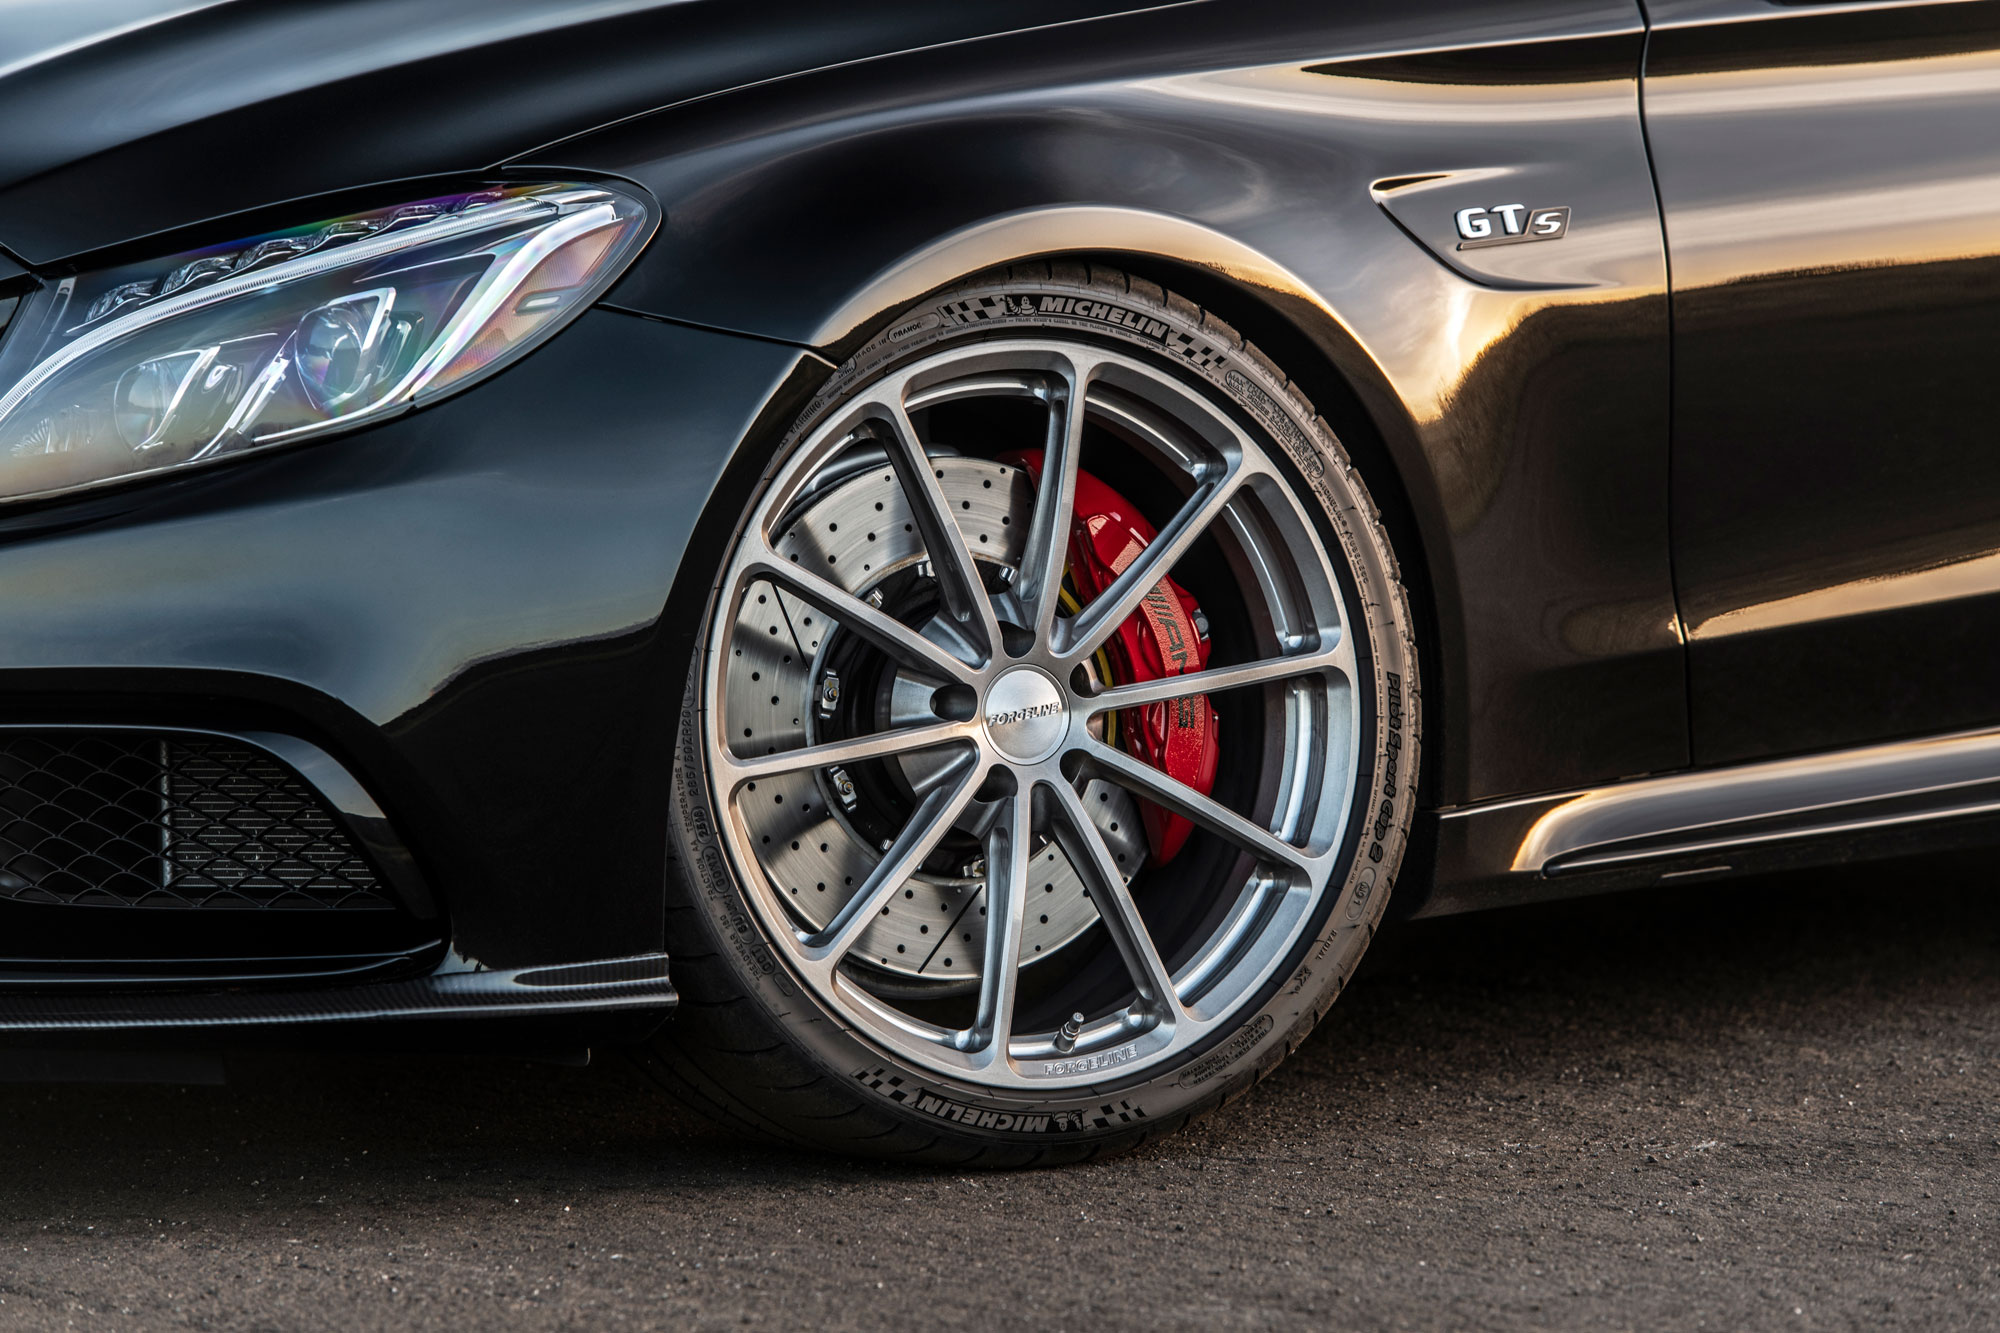 Mercedes-AMG C63 S by Carbahn Autoworks